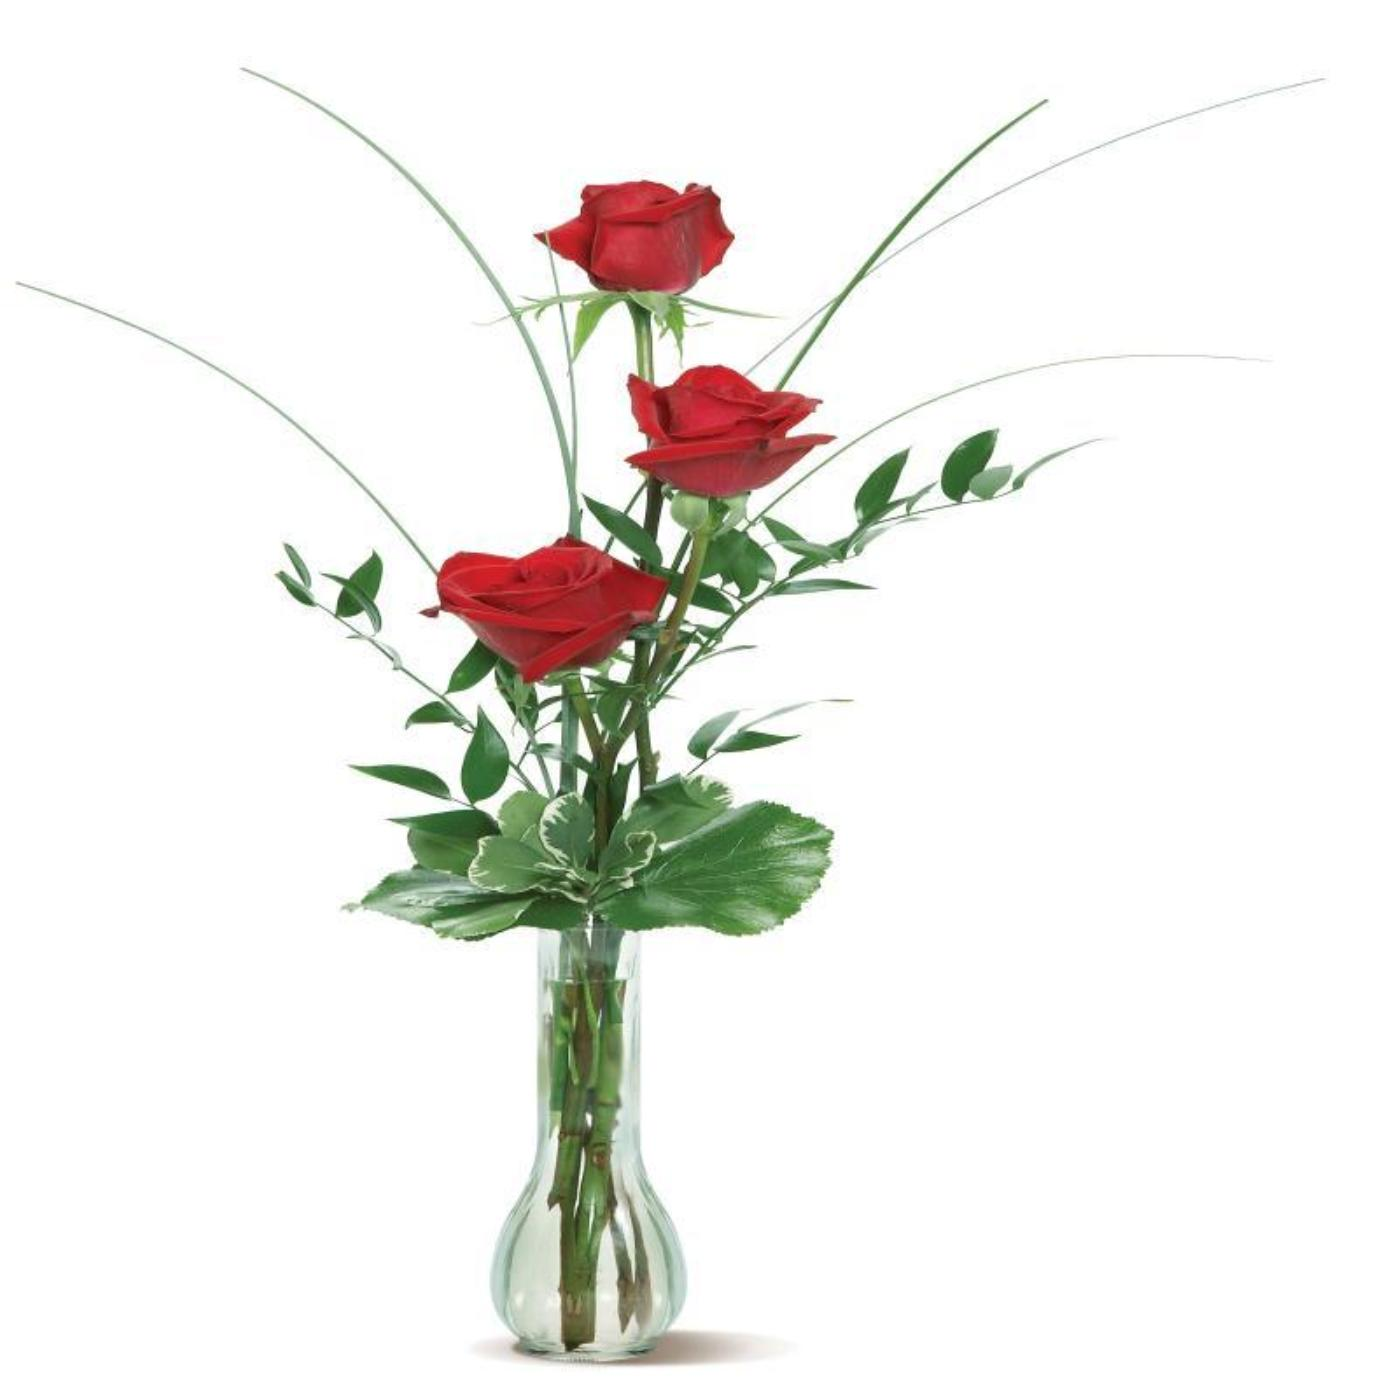 Red Rose Trio in a Glass Vase